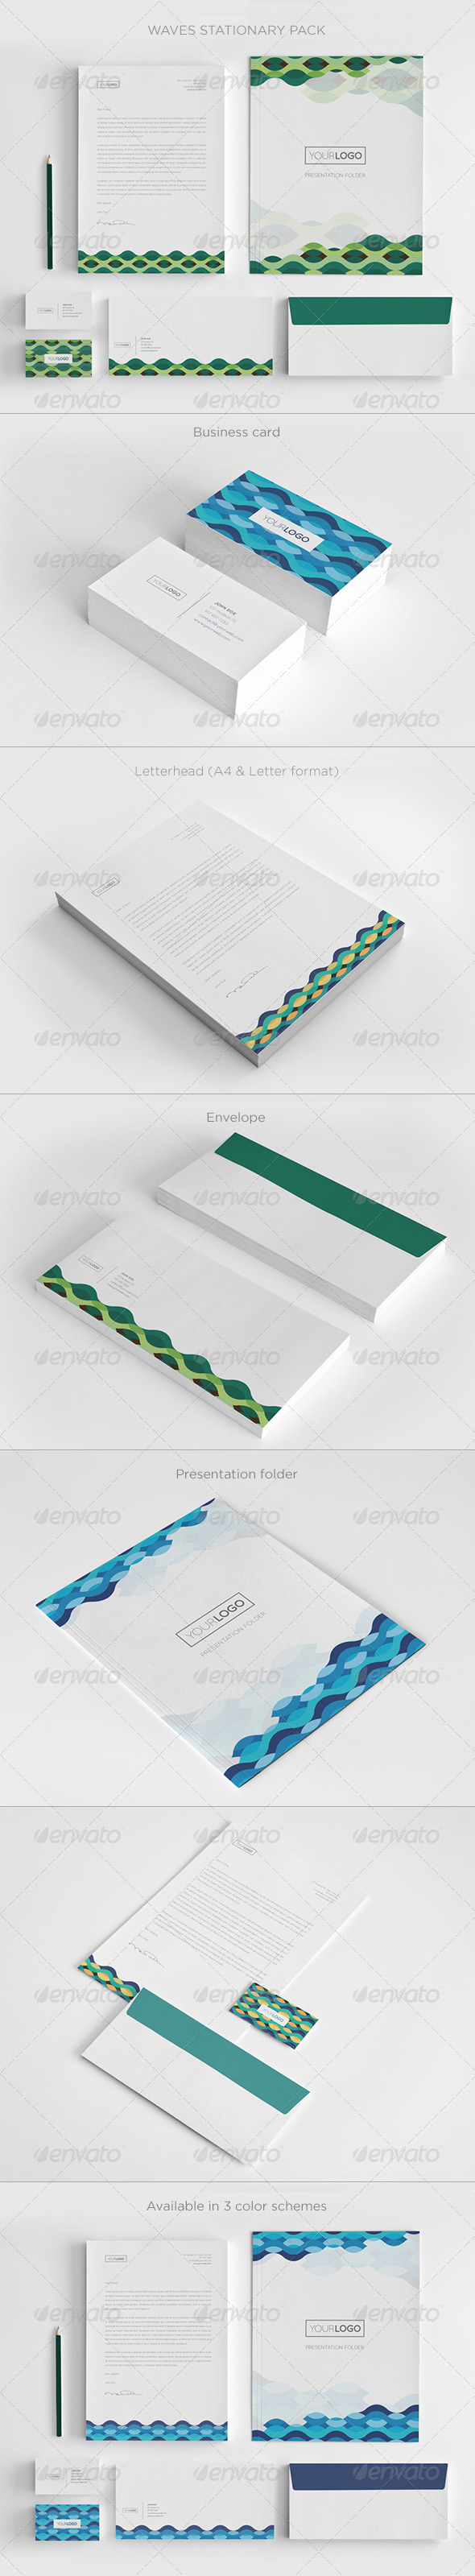 Waves Stationary Pack